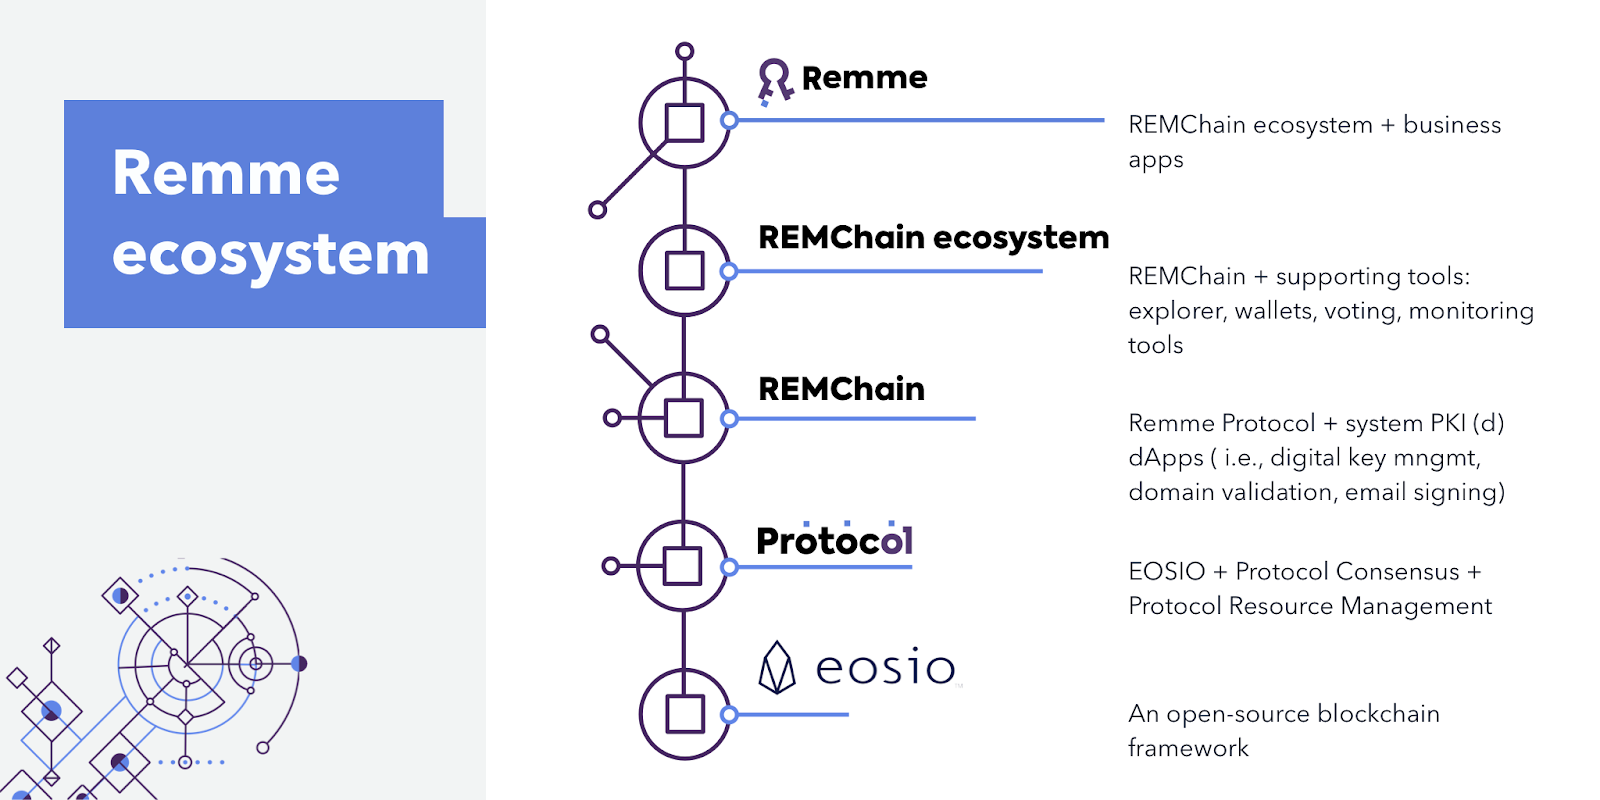 A hierarchical view of the Remme ecosystem.